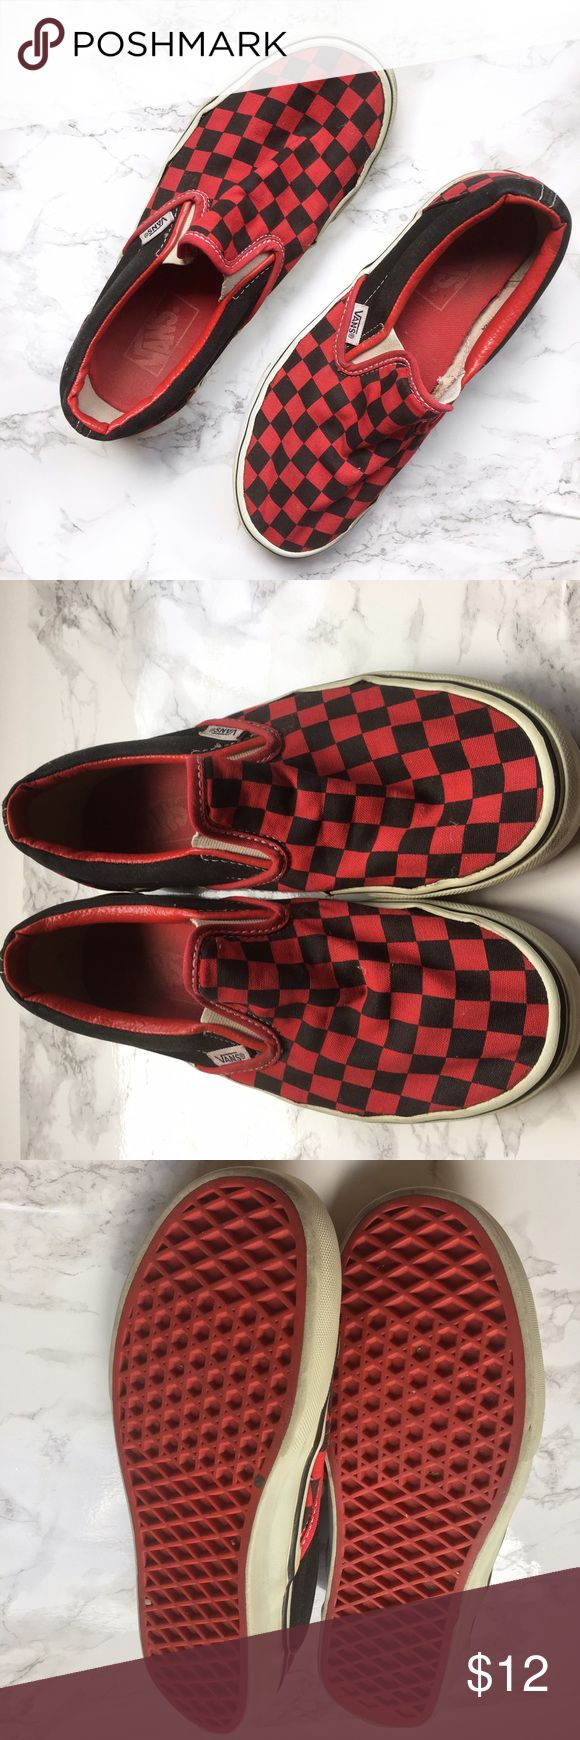 Vans checkered slides black and red Fun checkered black and red Vans slide  on shoes.